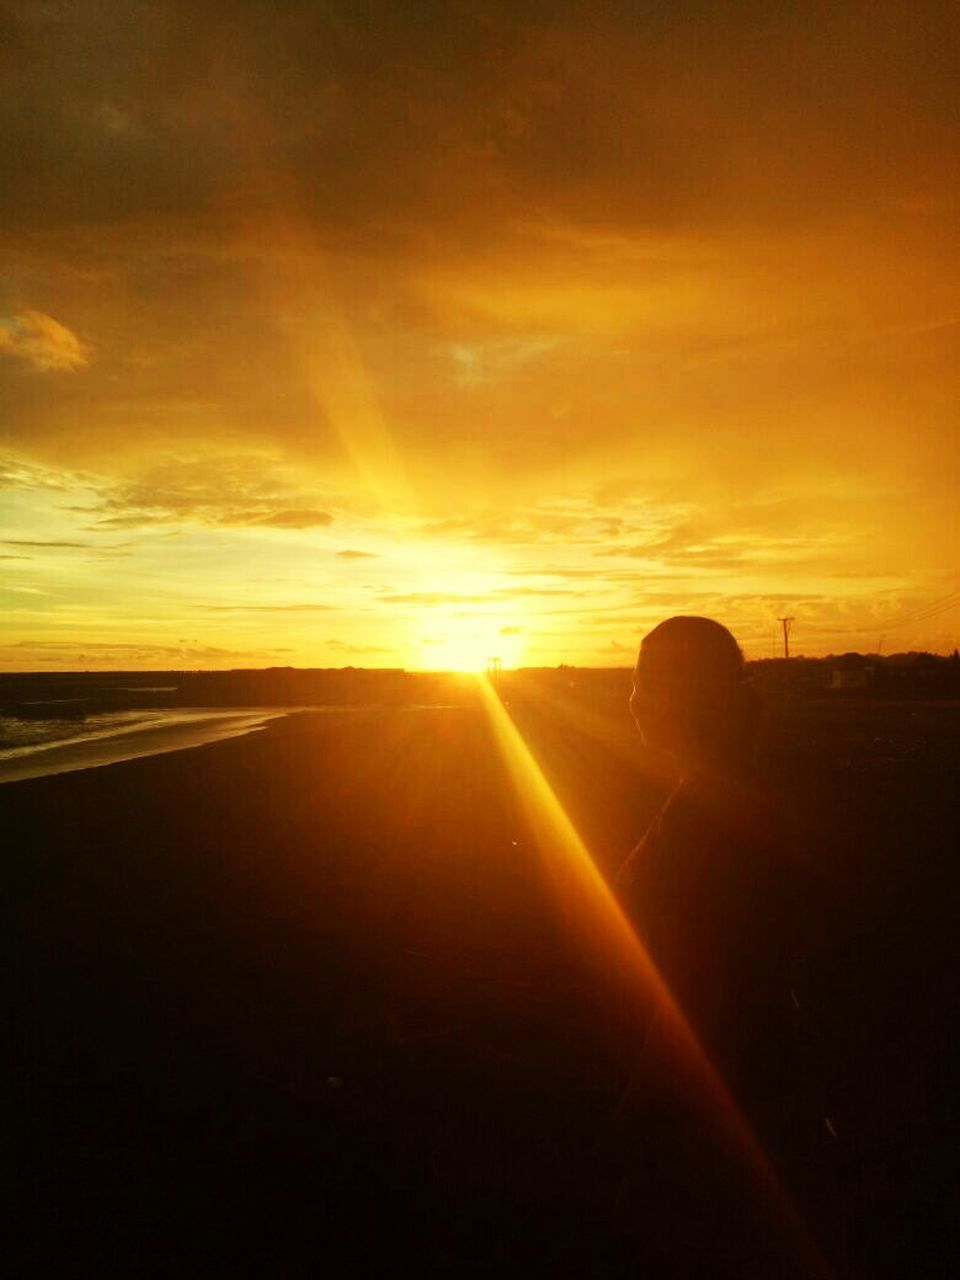 sunset, sun, sunbeam, silhouette, sunlight, nature, sky, cloud - sky, scenics, outdoors, beauty in nature, one person, people, day